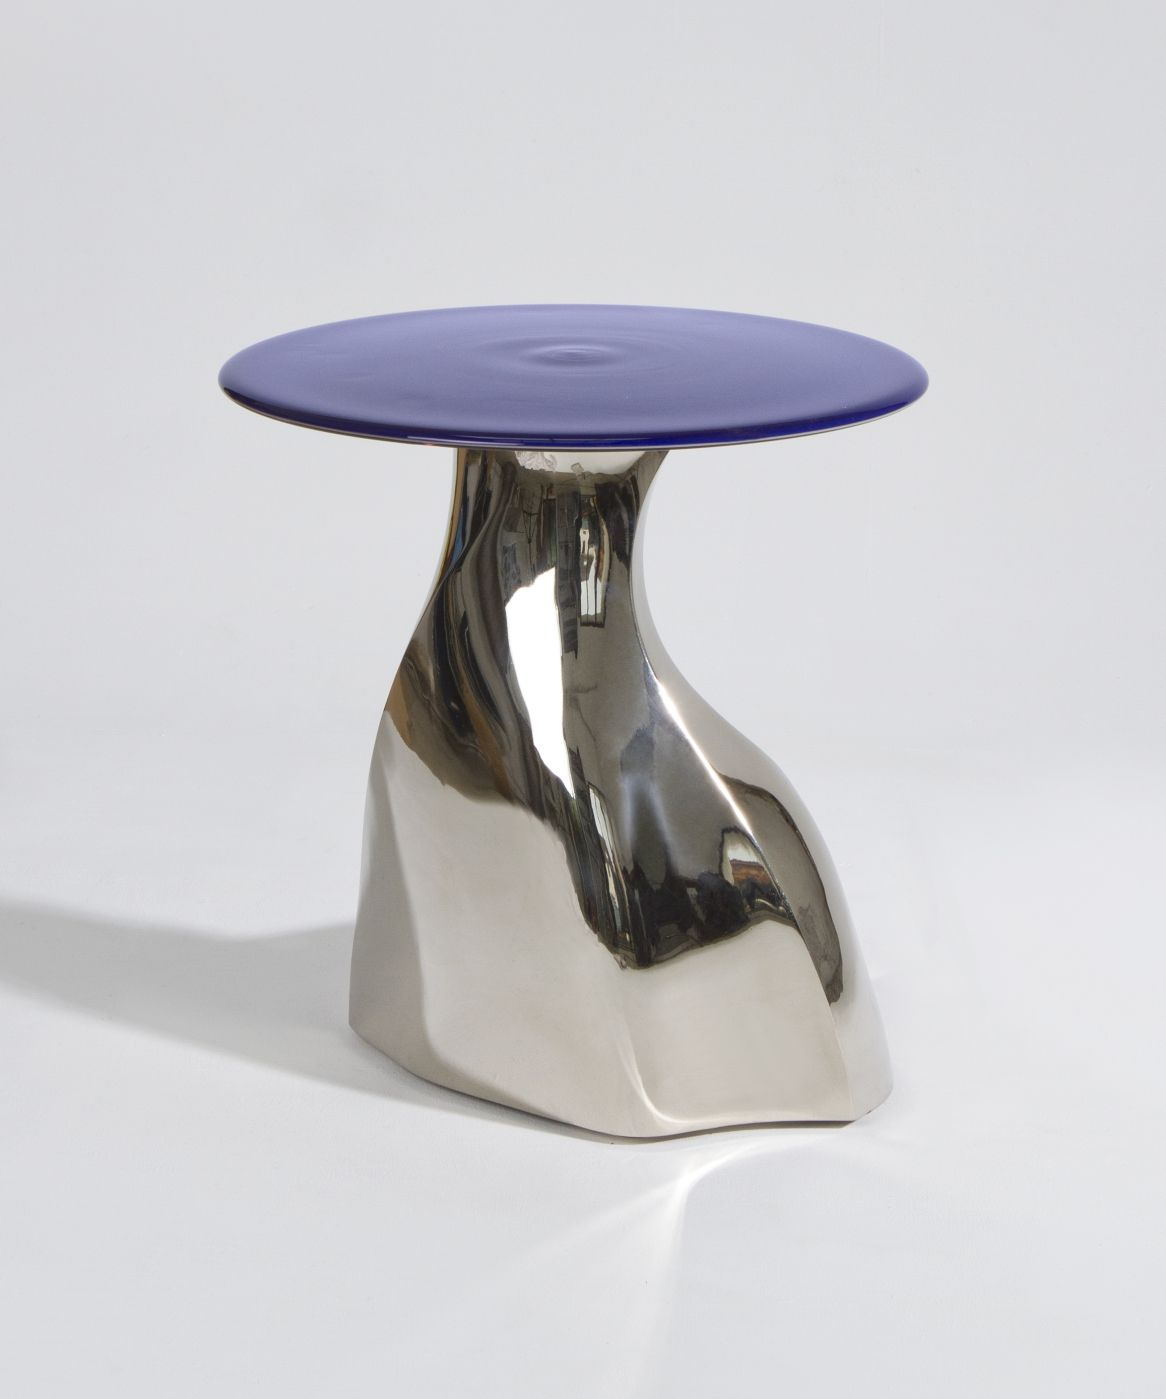 Eric schmitt ch re chair chaise table d 39 appoint mobilier de salon et beaux meubles for Conception salon 3d